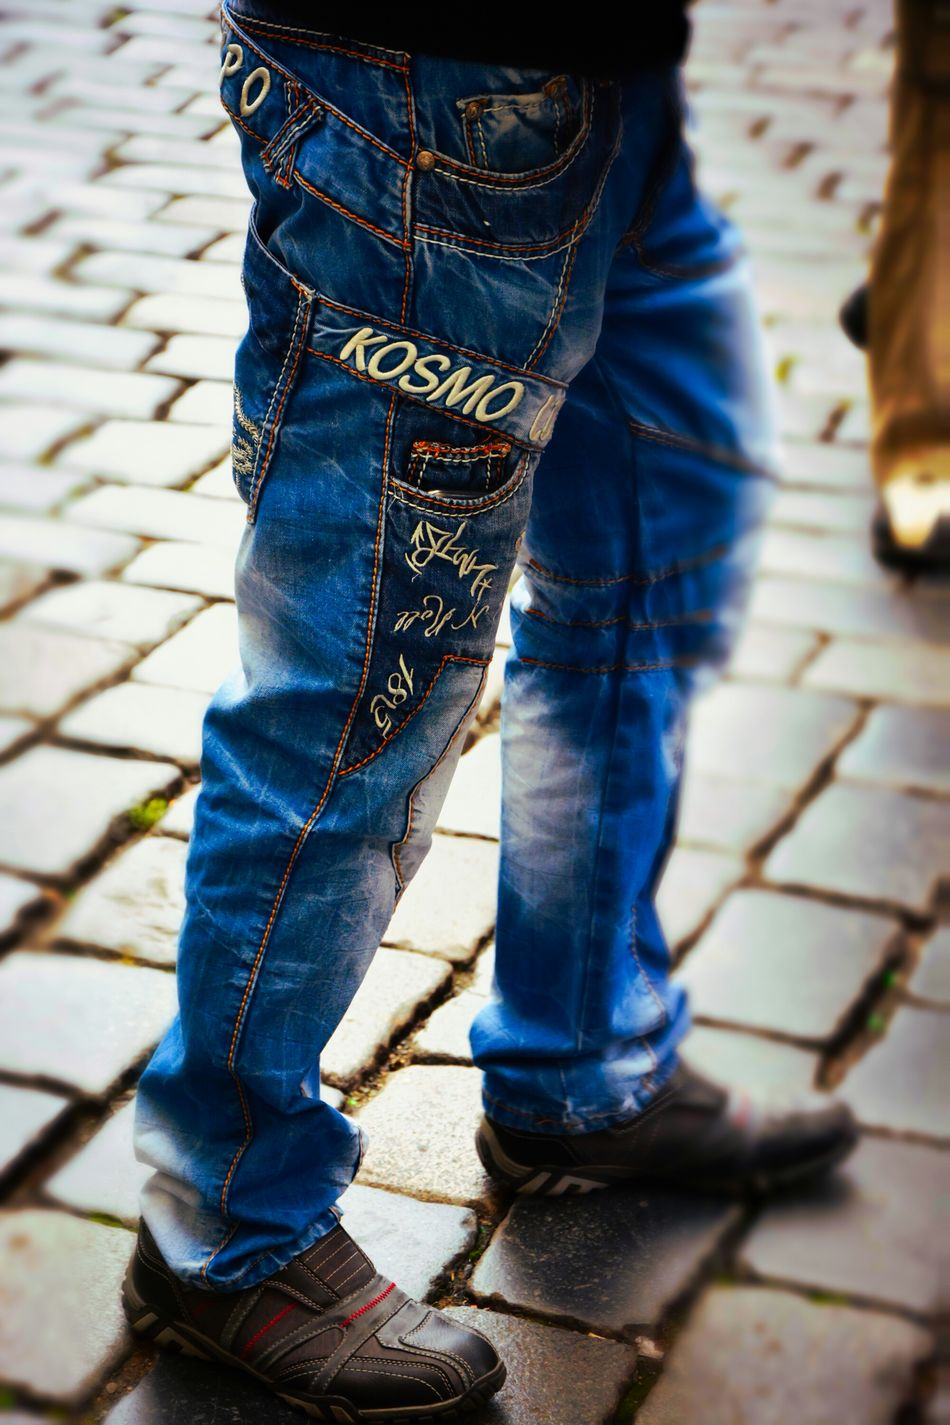 Jeans Blue Jeans Taking Pictures Taking Photos People Photography Peoplephotography Street Photography Streetphotography Legs EyeEm Best Shots